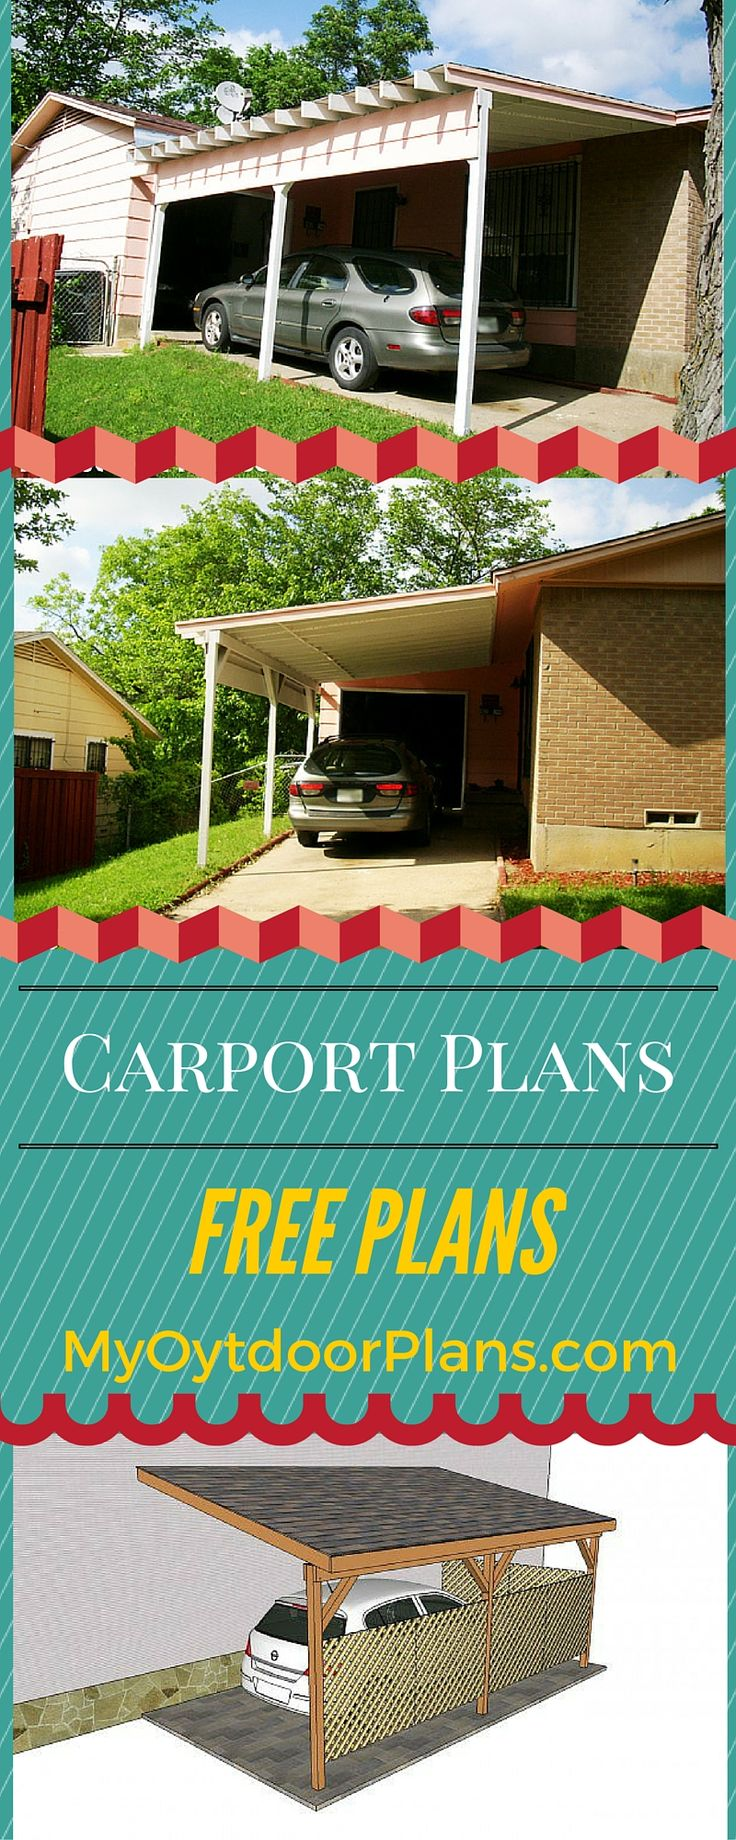 Attached carport plans Carport plans, Pergola plans diy